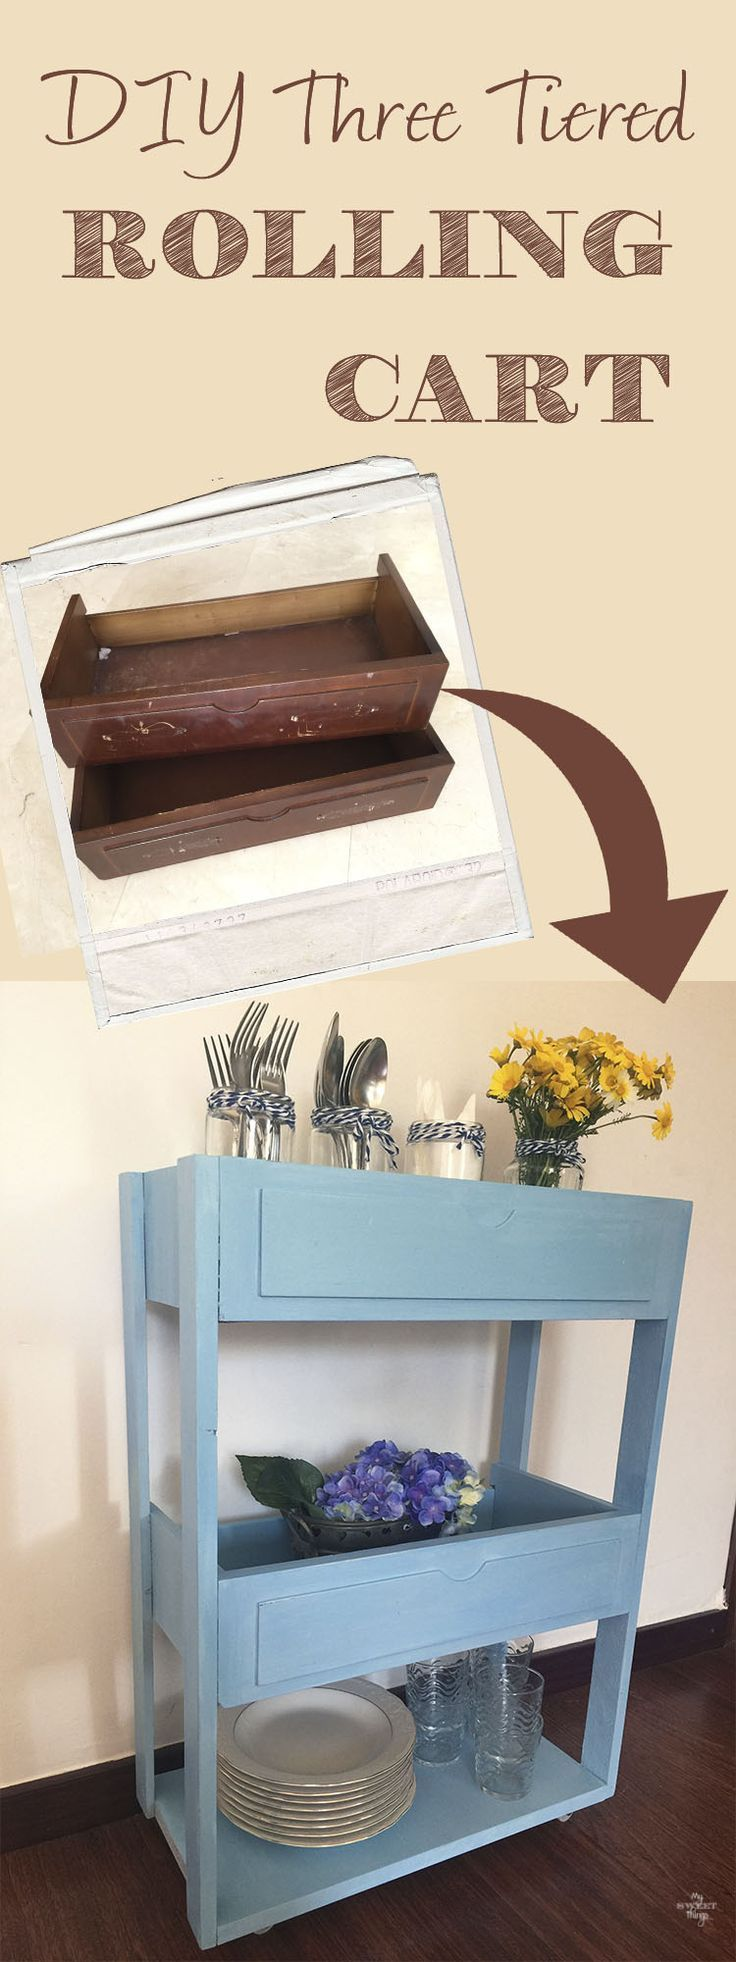 Rolling craft cart with drawers - Diy Three Tiered Rolling Cart Out Of Free Finds